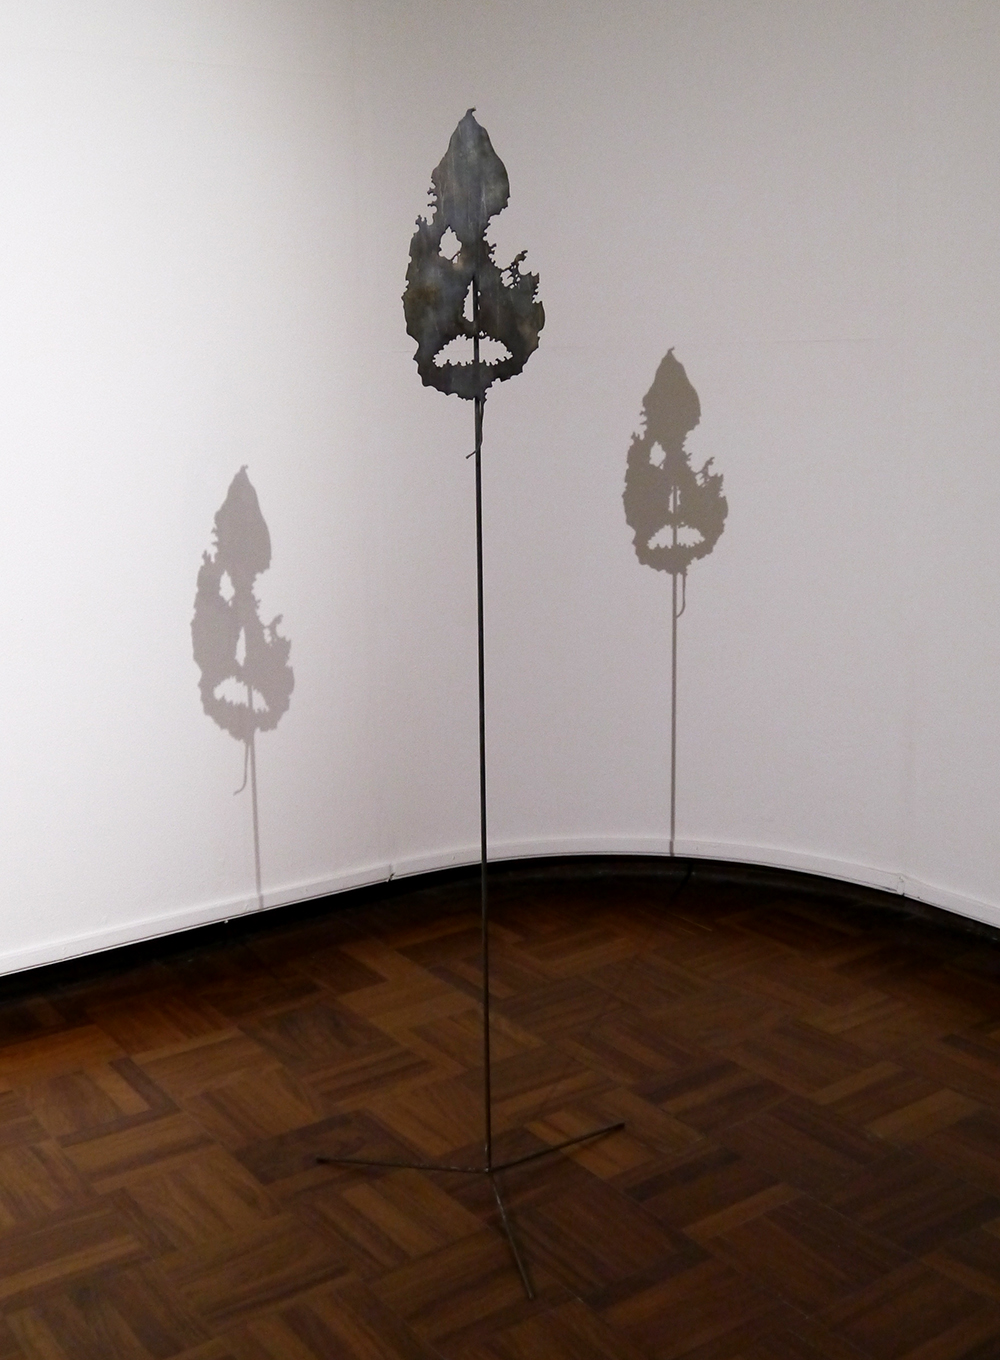 Scottish Blogger, Dundee blogger, what's on in Dundee, Duncan of Jordanstone College of Art and Design, Degree Show 2015, DJCAD Degree Show 2015, art, Scottish art, sculpture, leaf, shadows, Calum MacGillivray